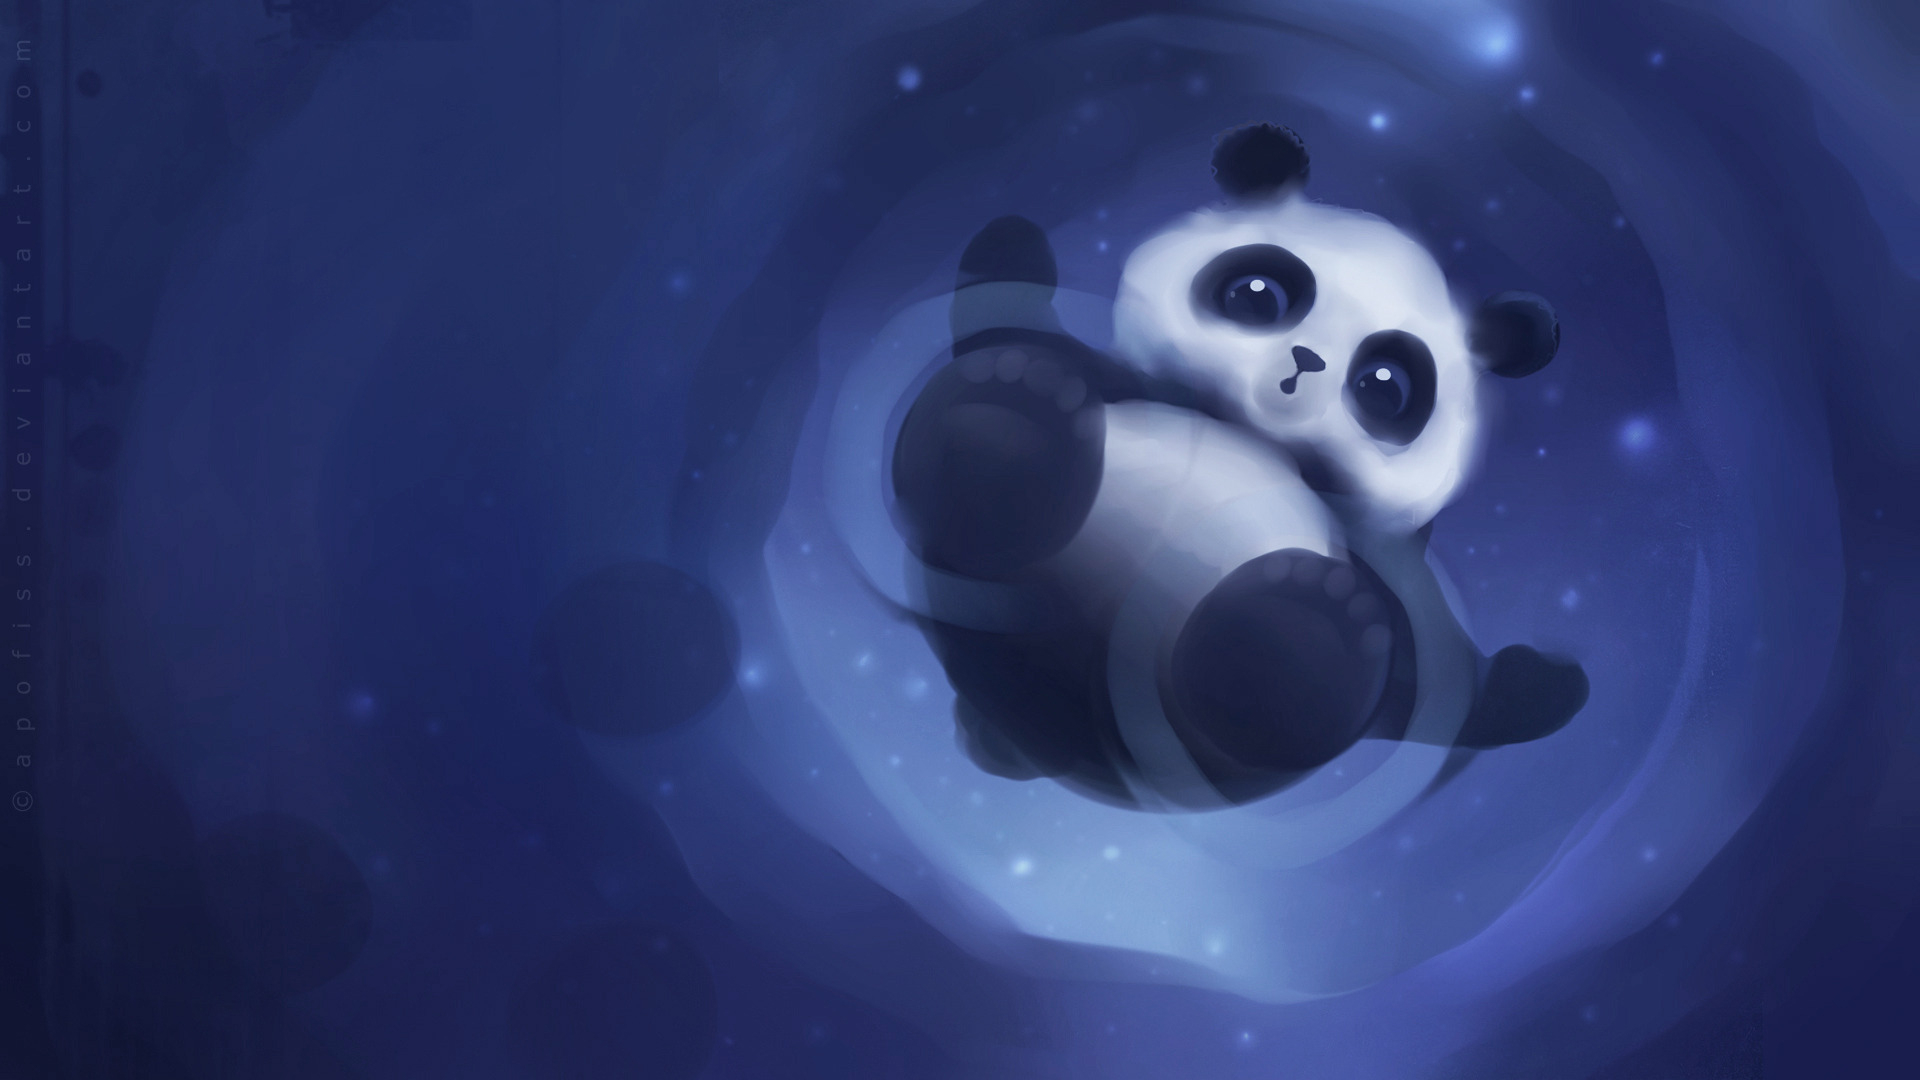 Download mobile wallpaper Animals, Pictures, Pandas for free.